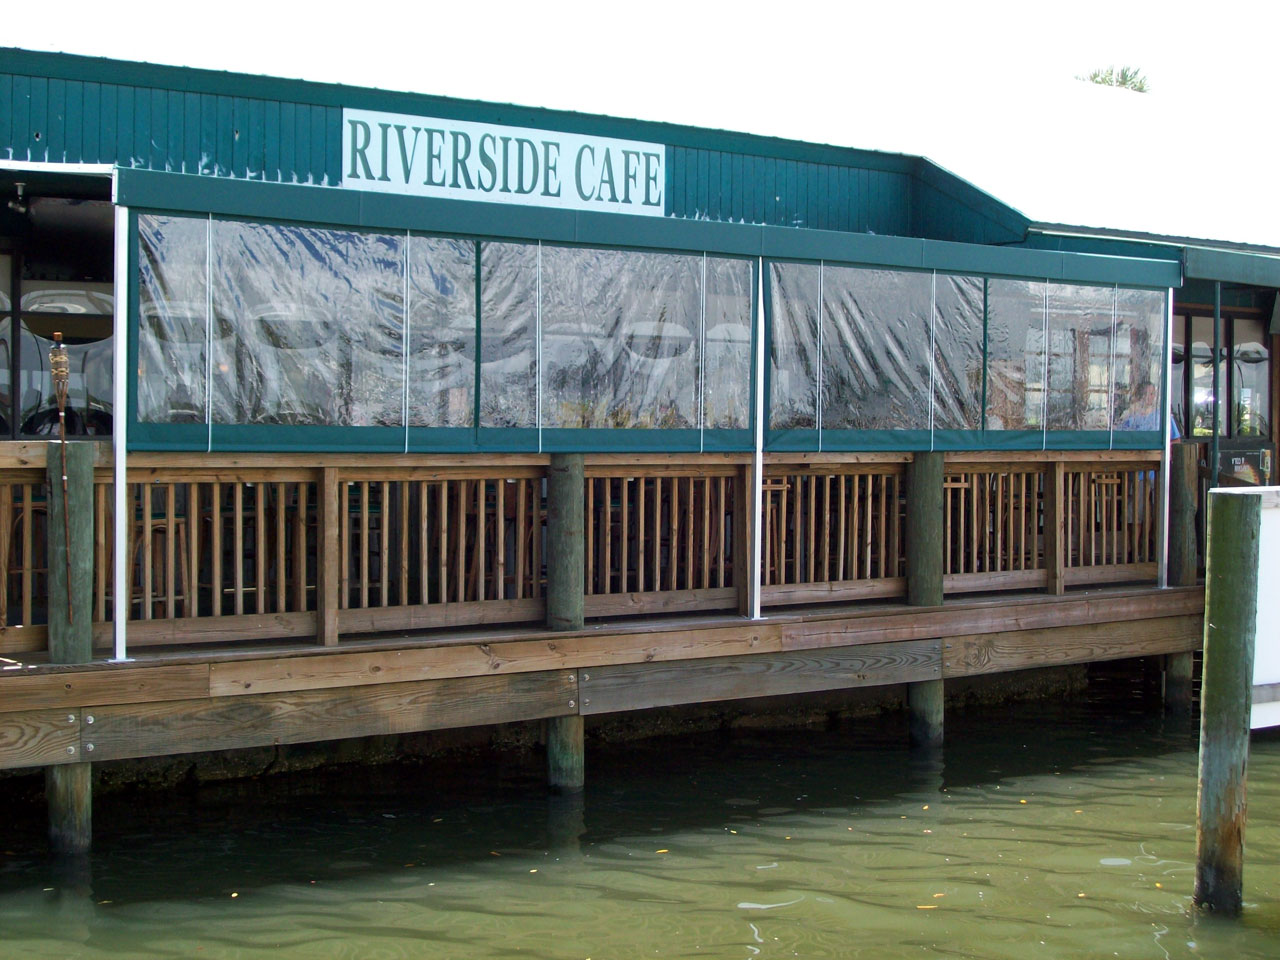 riverside cafe pulley curtains